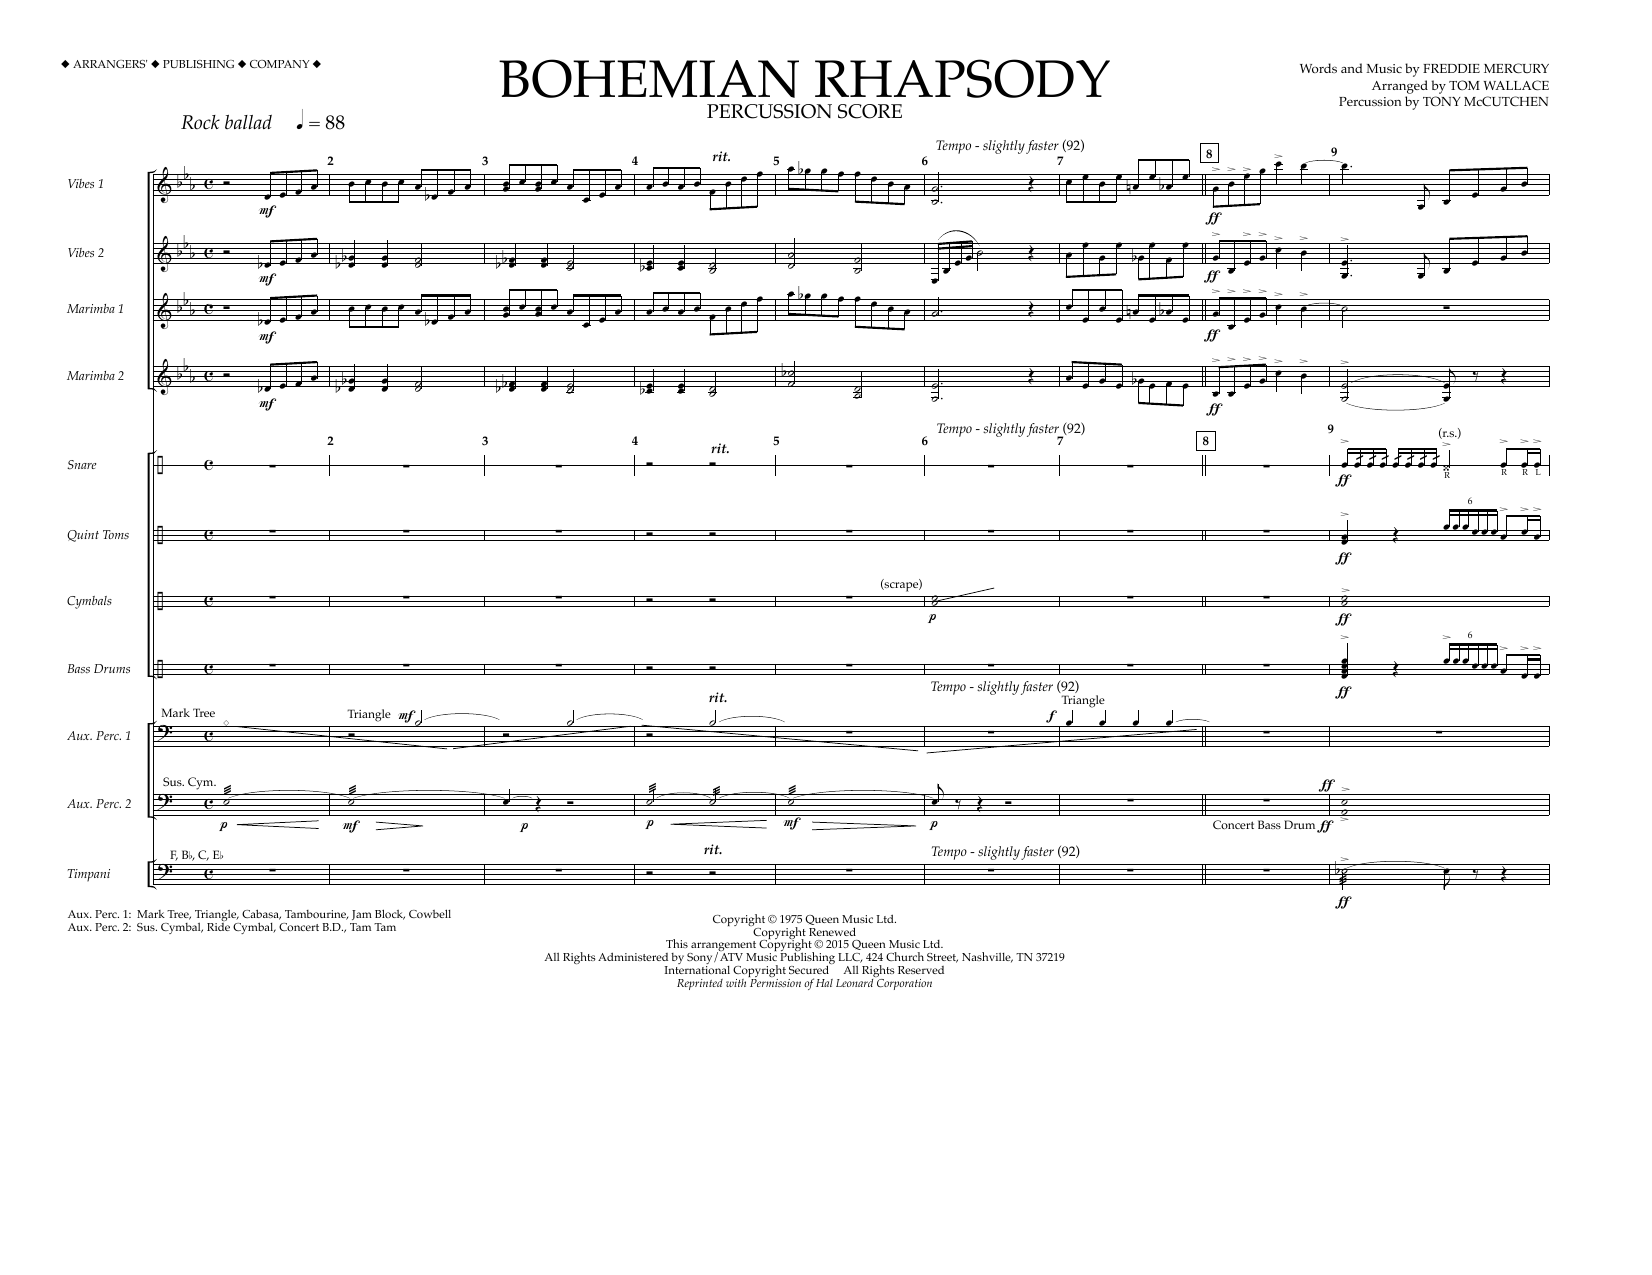 Bohemian Rhapsody - Percussion Score Sheet Music